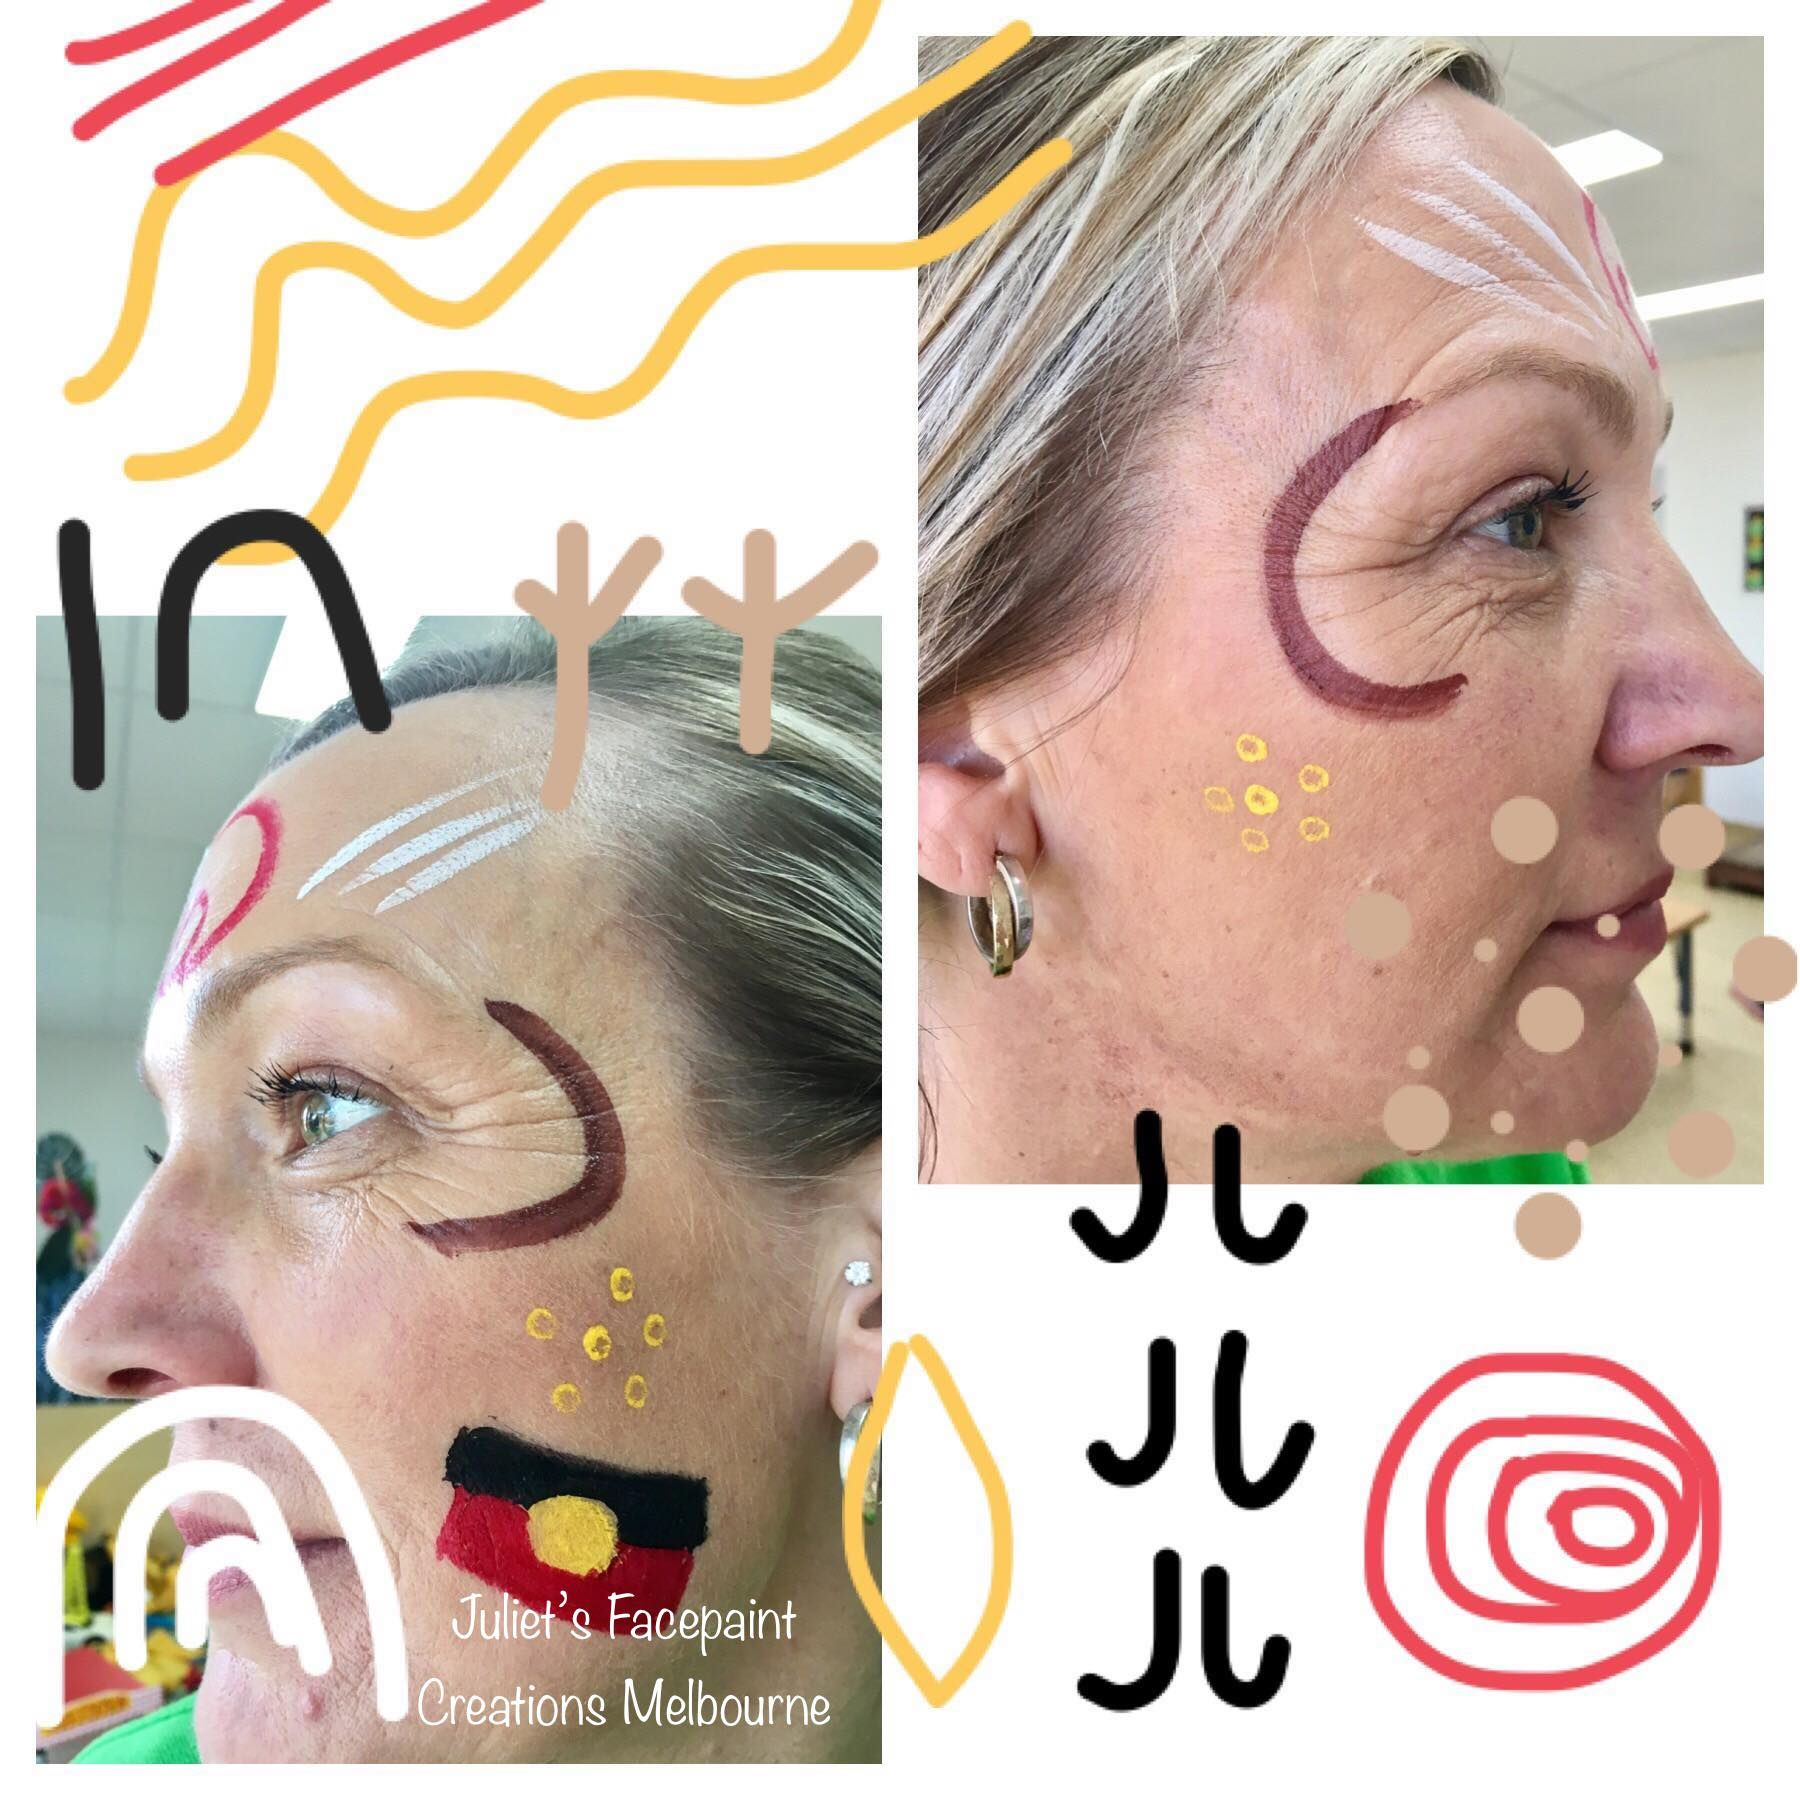 Naidoc Week 2019 Face Painting Face Painting Kids Face Paint Face